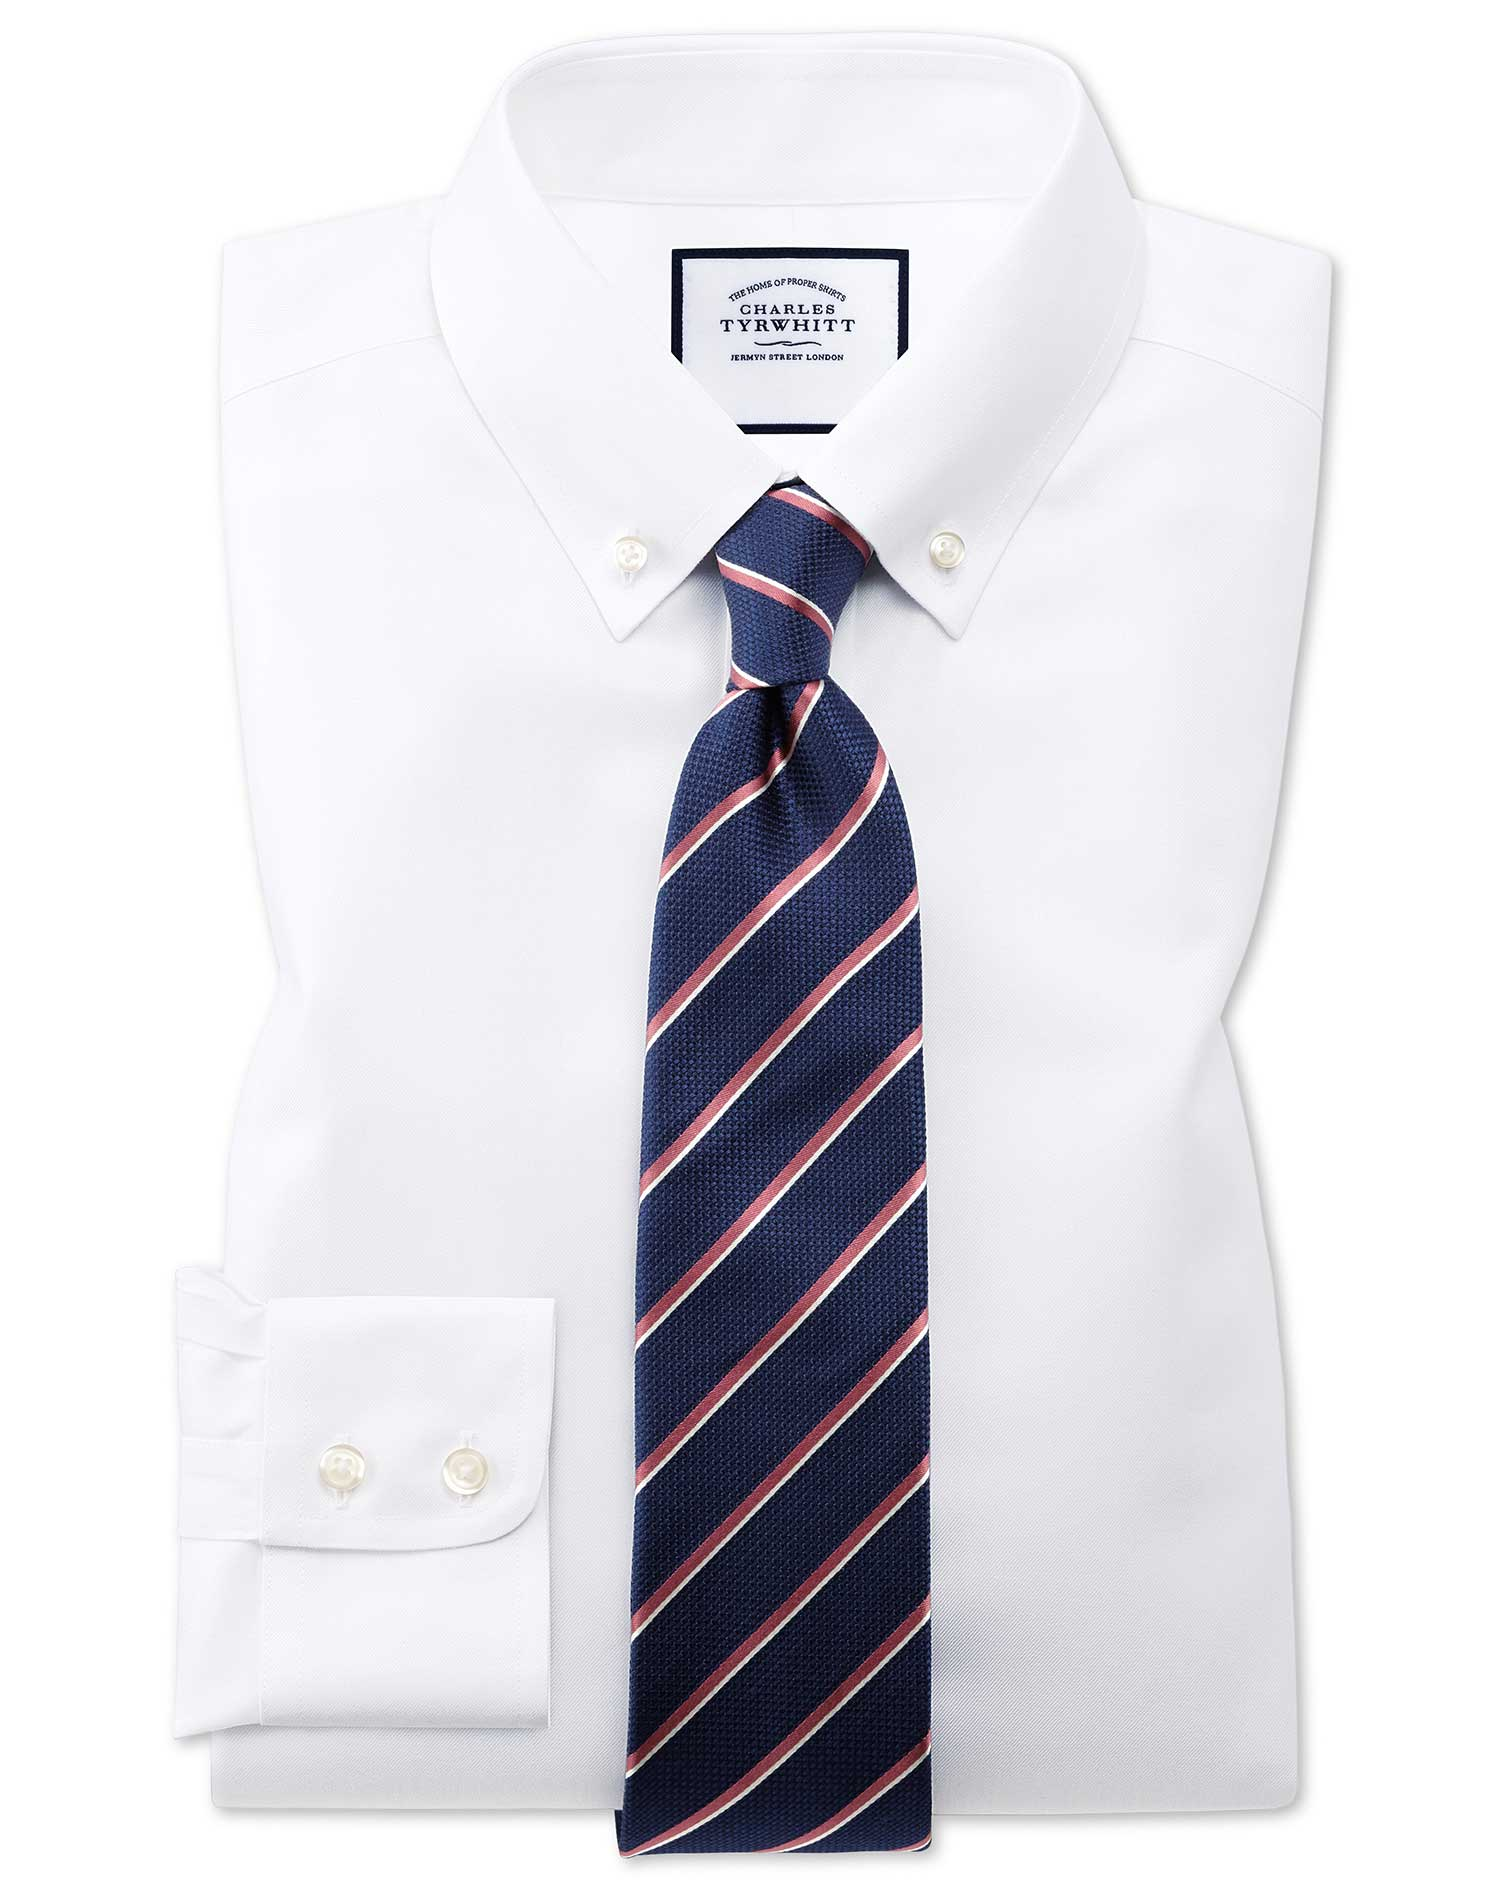 Extra Slim Fit Button-Down Non-Iron Twill White Cotton Formal Shirt Single Cuff Size 16.5/38 by Char